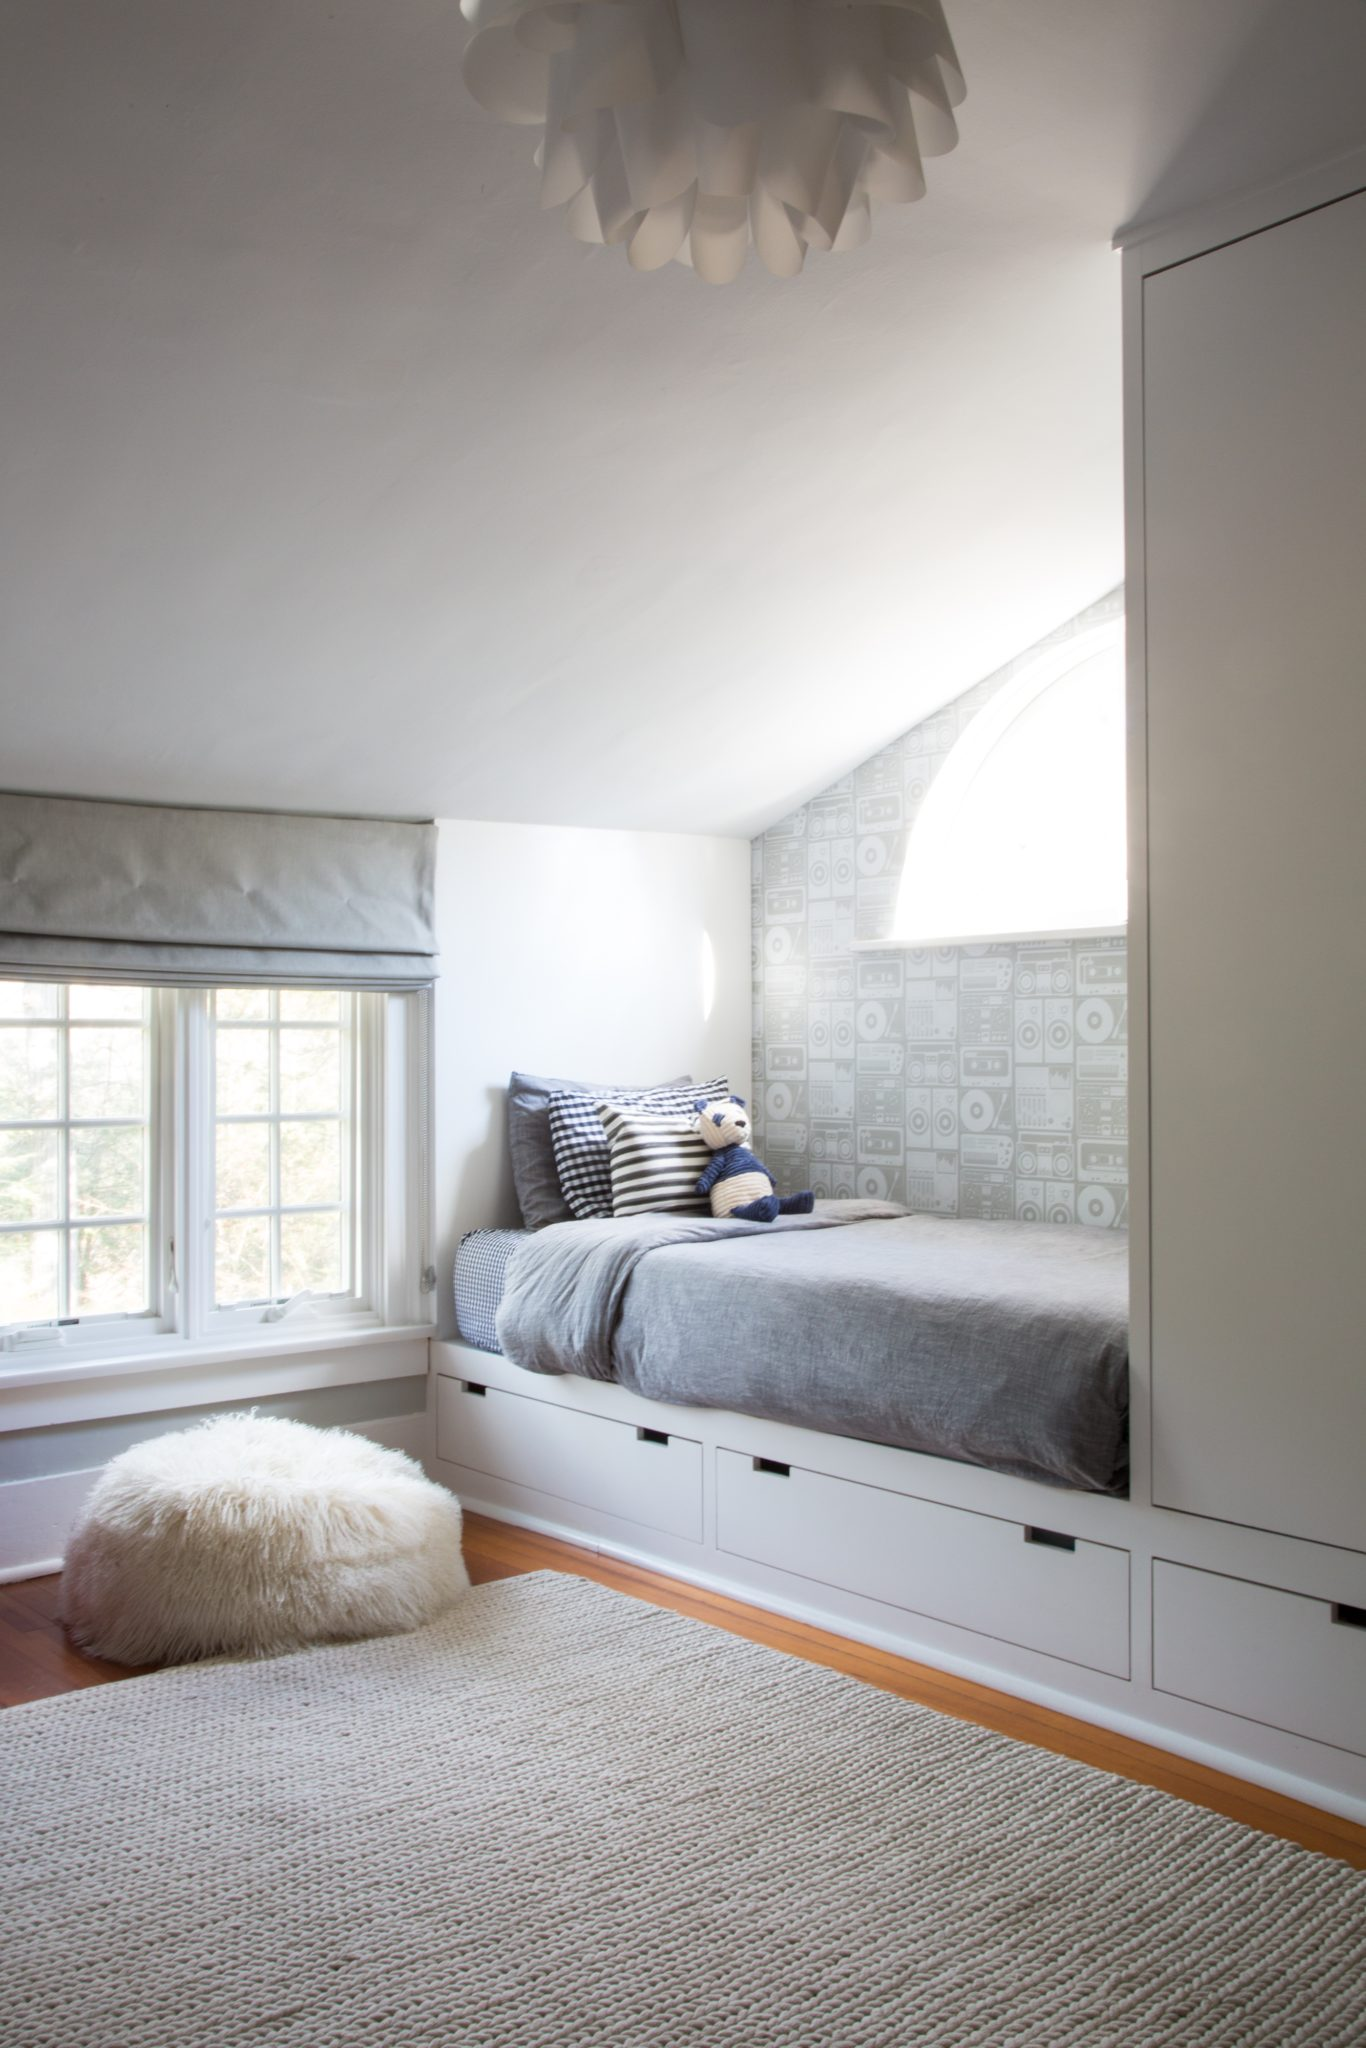 Kids Bdrm with Built in Bed/Closet by Lauren A Balkan Designs